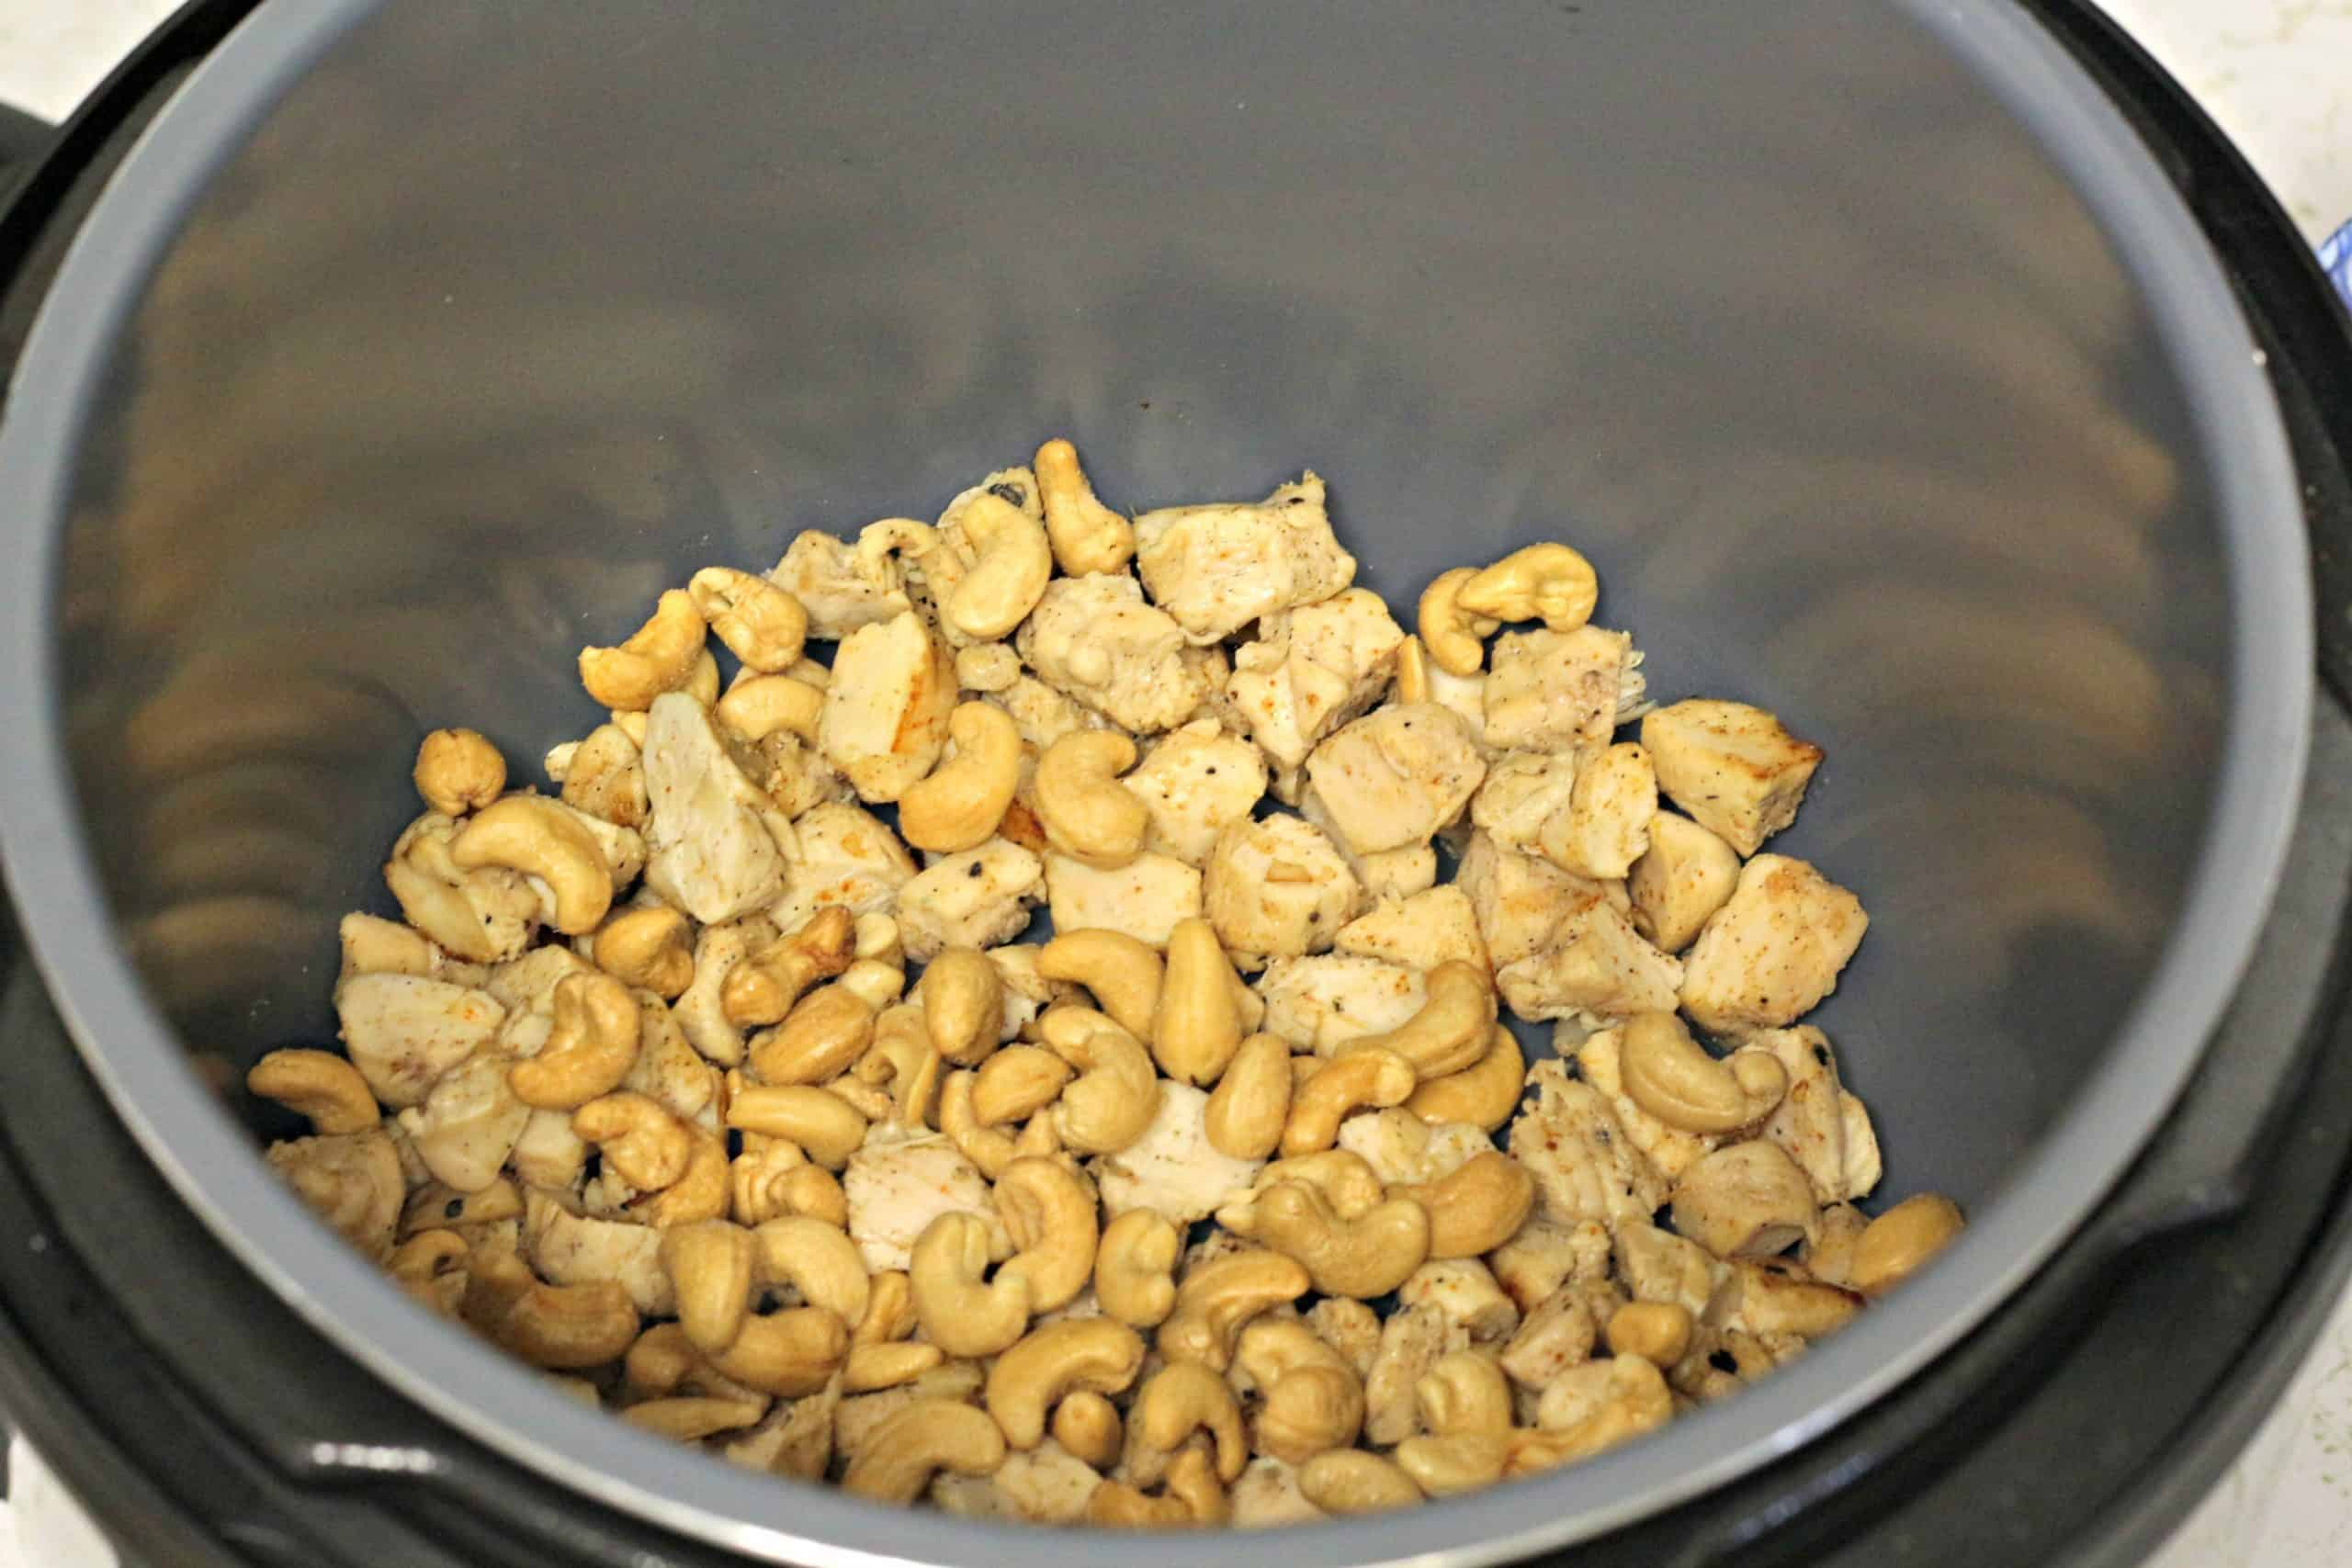 Chicken and Cashews in Instant Pot